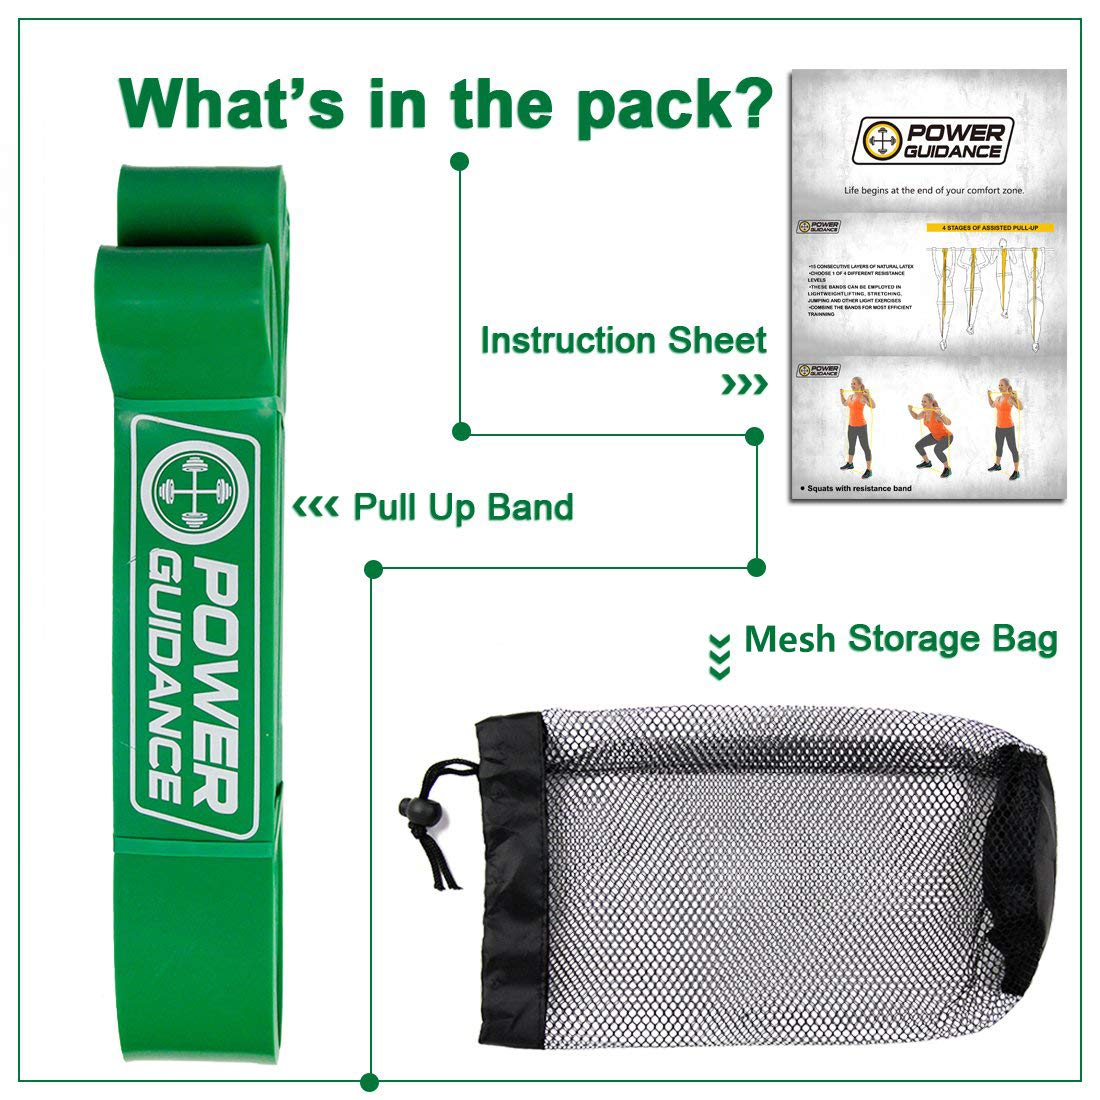 POWER GUIDANCE Pull Up Assist Bands - Stretch Resistance Band - Mobility Band - Powerlifting Bands - by Perfect for Body Stretching, Powerlifting, Resistance Training - Single Unit- Green by POWER GUIDANCE (Image #3)